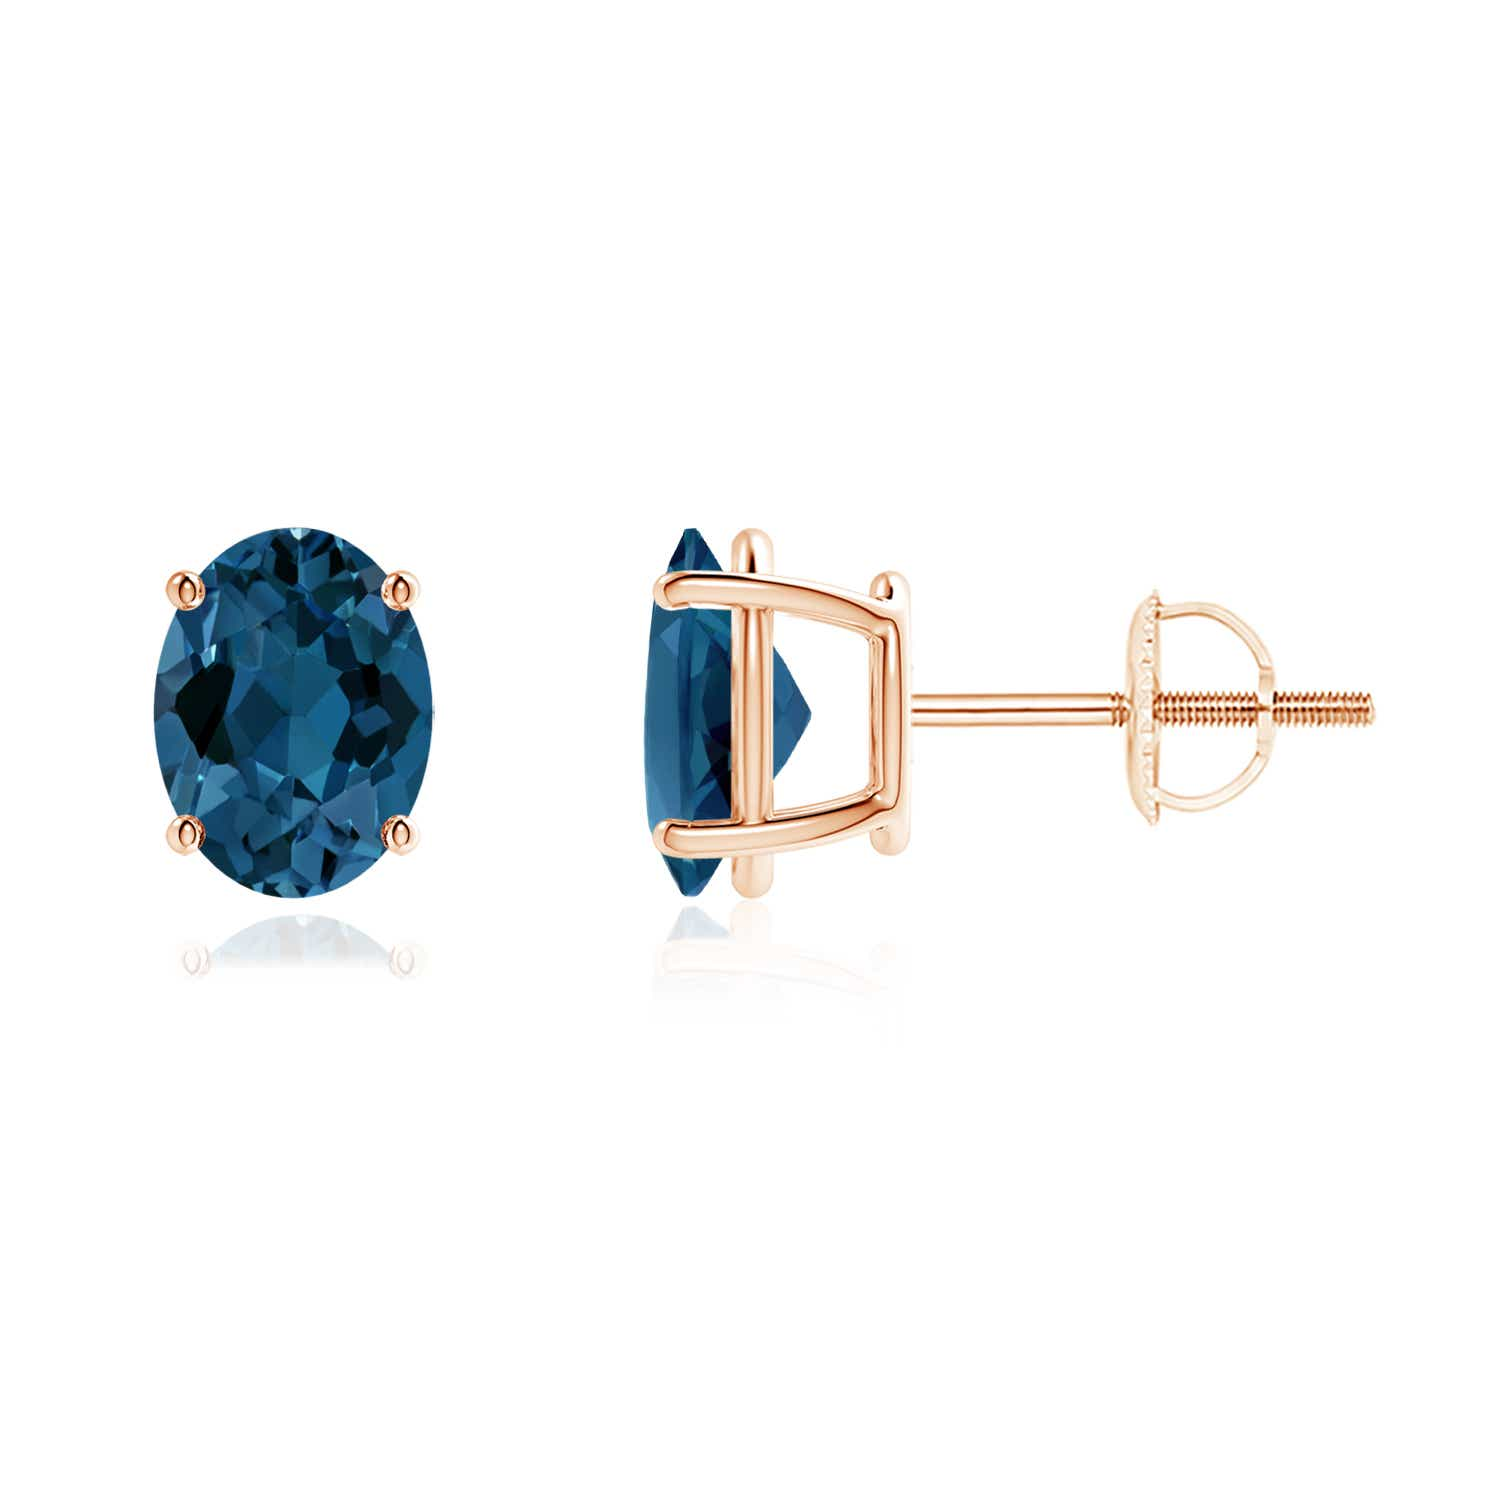 Angara Claw-Set Solitaire Oval Sapphire Stud Earrings nJdNt